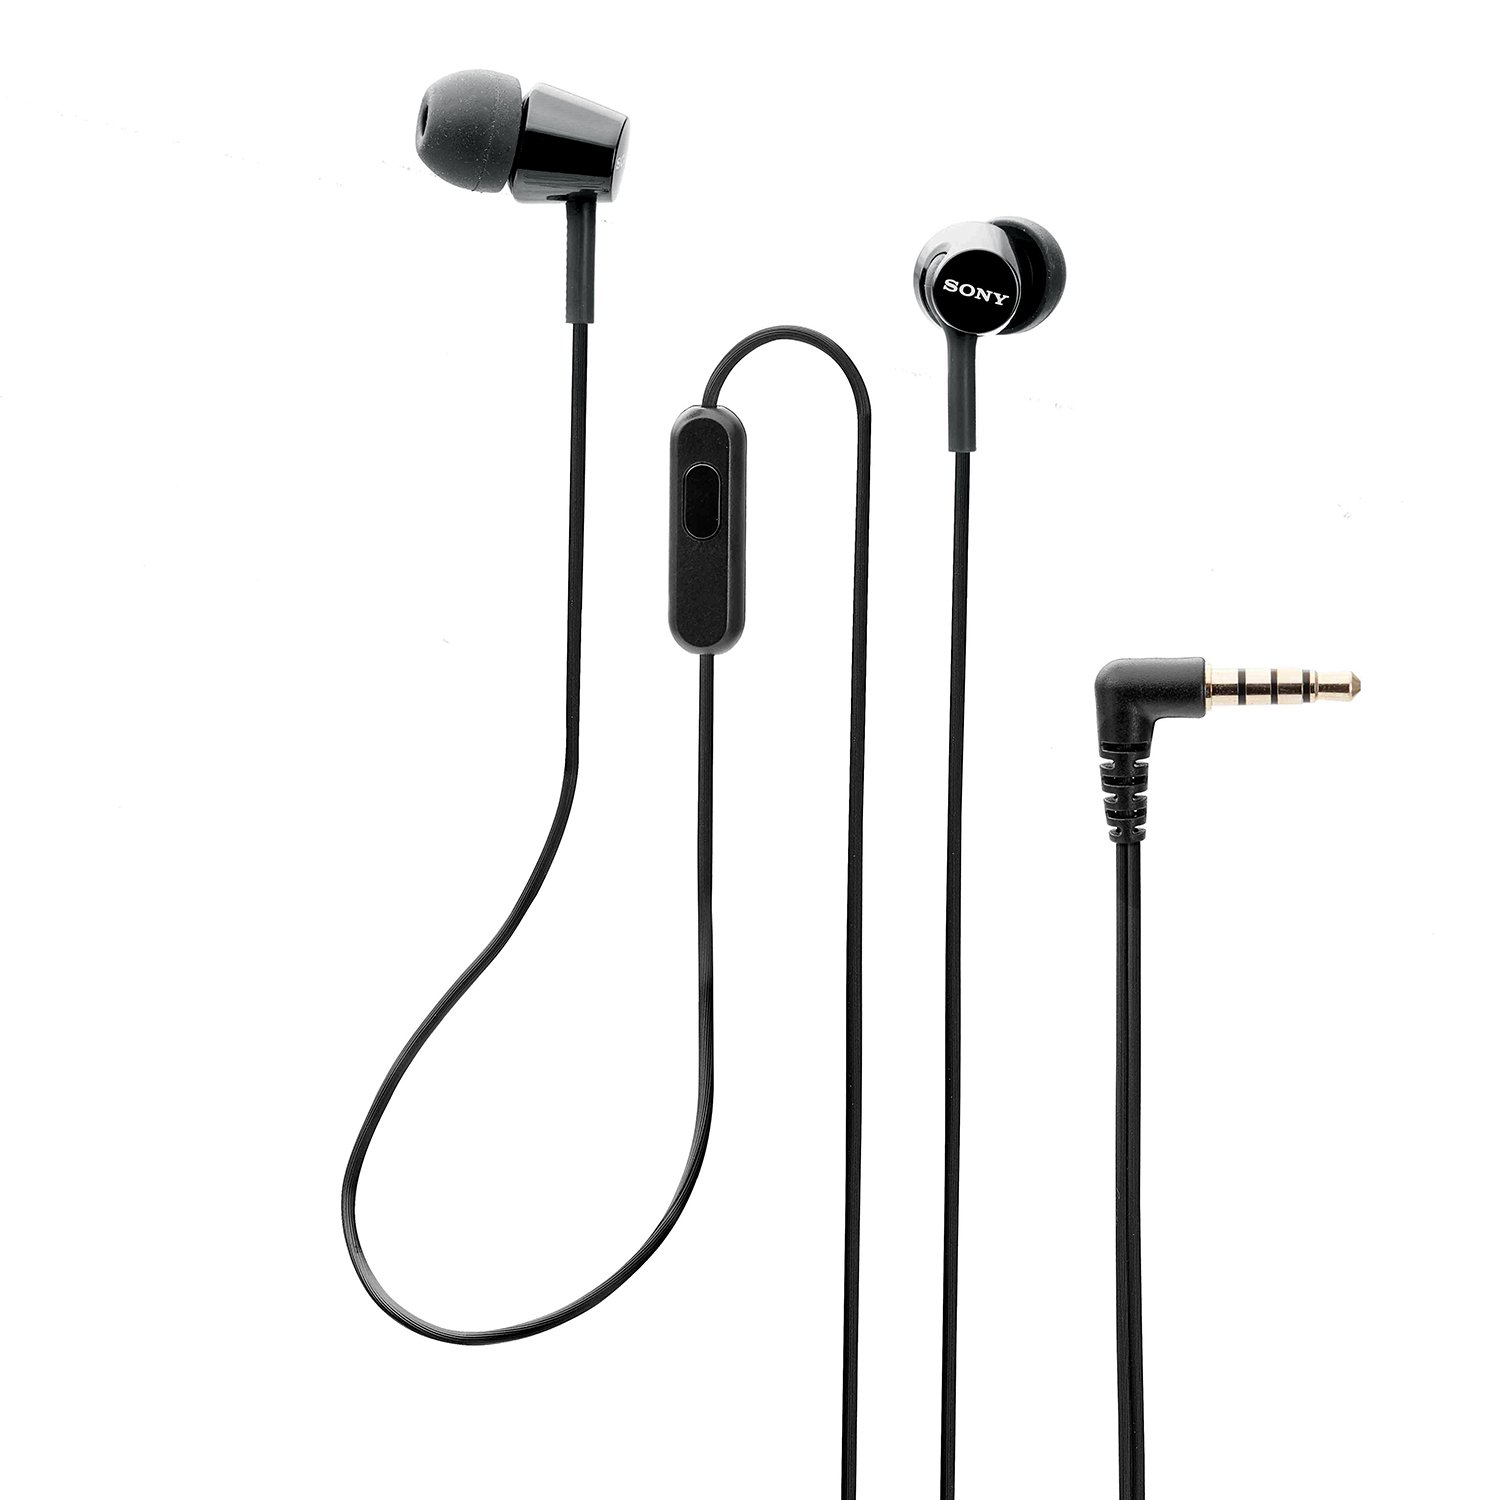 Sony MDR-EX150AP Wired In-Ear Headphones with tangle free cable, 3.5mm Jack, Headset with Mic for phone calls and 1 Year Warranty - (Black)